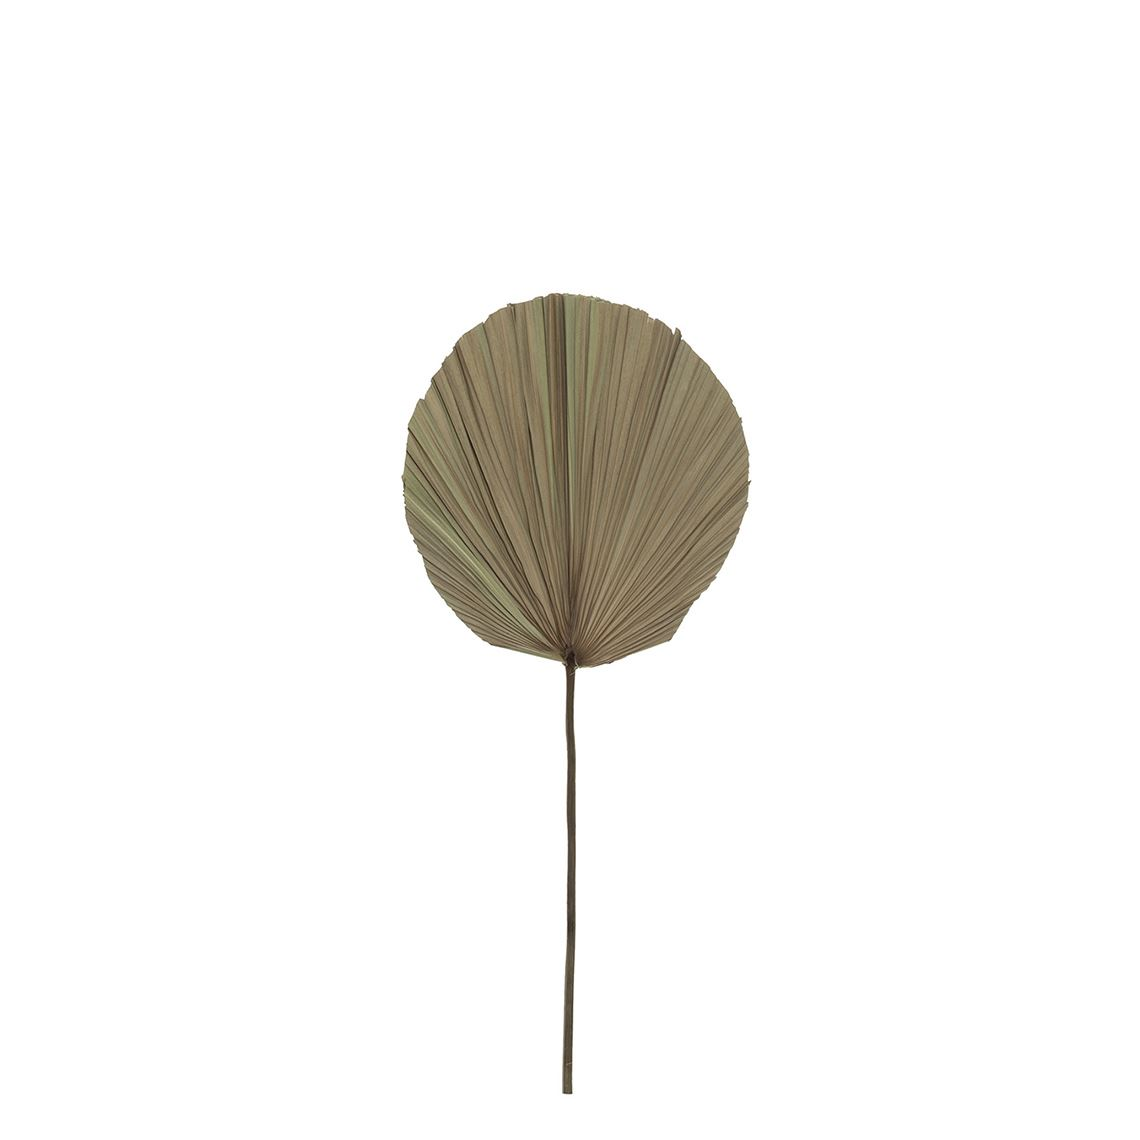 Dried Cut Fan Palm Stem Natural (Q) by Freedom by Freedom, a Plants for sale on Style Sourcebook